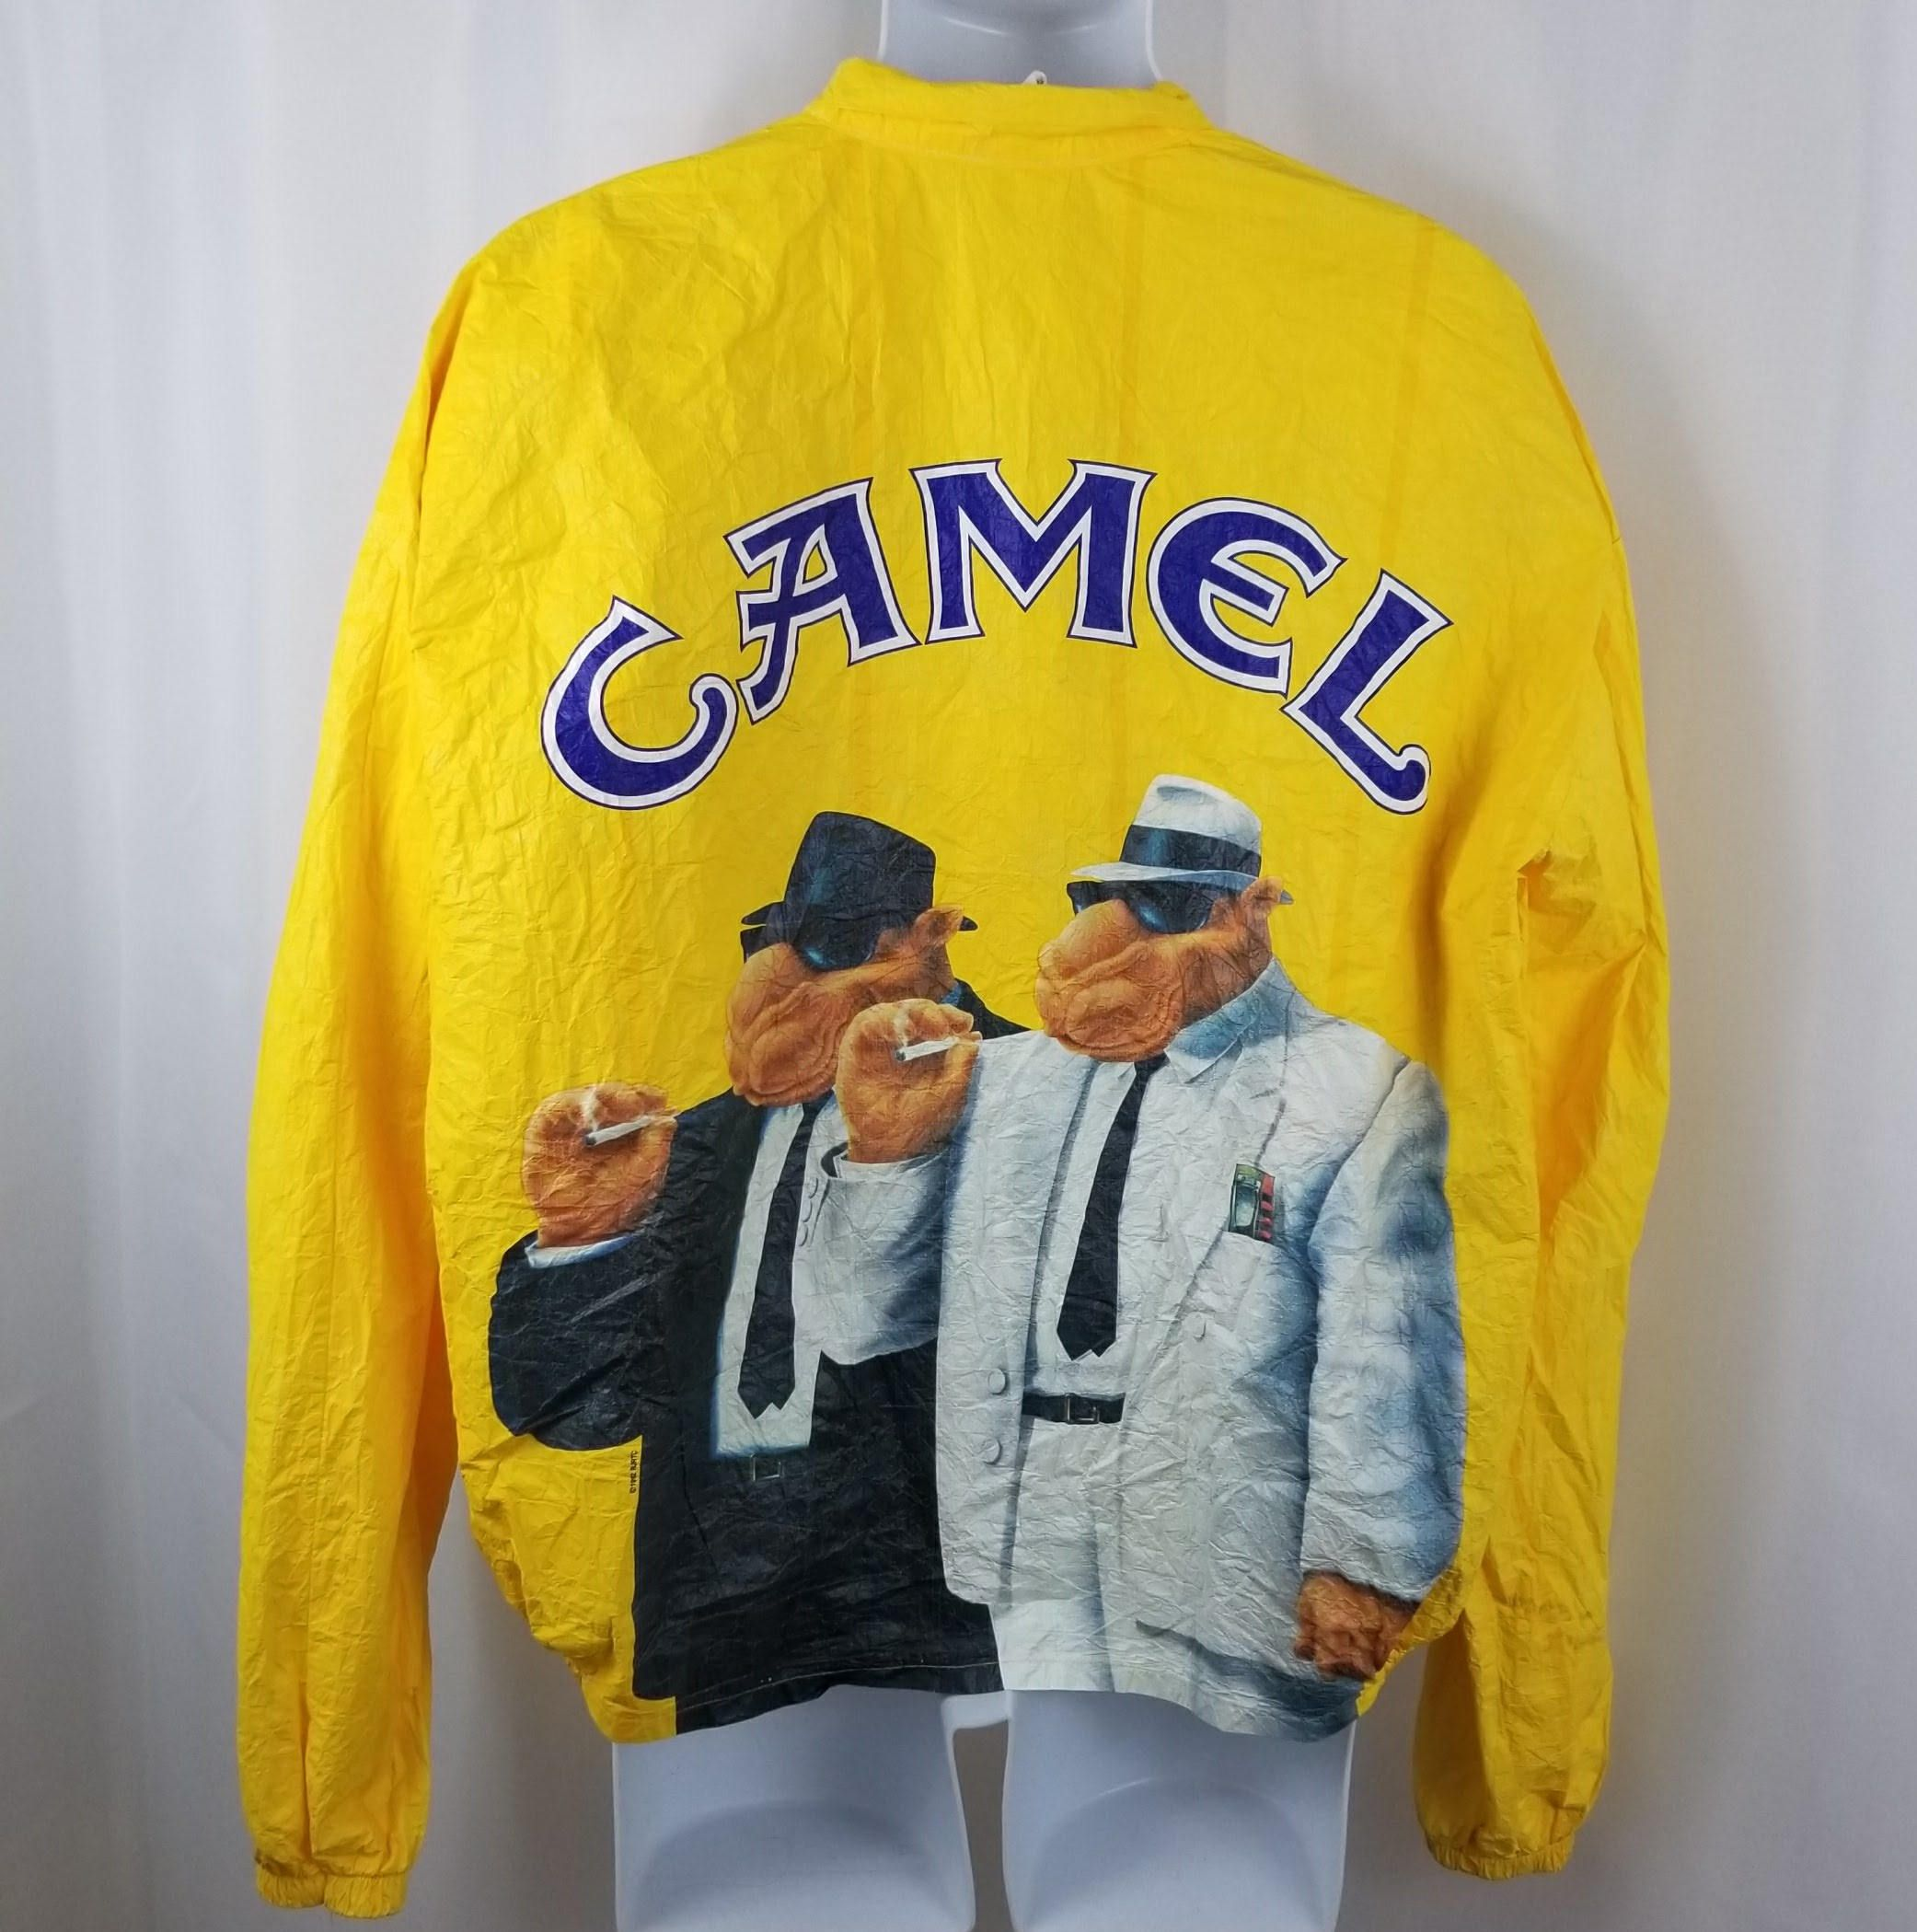 f22ea427a355 Camel Cigarettes Jacket Windbreaker 90s Yellow XL Paper Thin Tyvek Joe Cool  Vintage Advertising Smoking by TraSheeWomen on Etsy #camel #joecool  #cigarettes ...